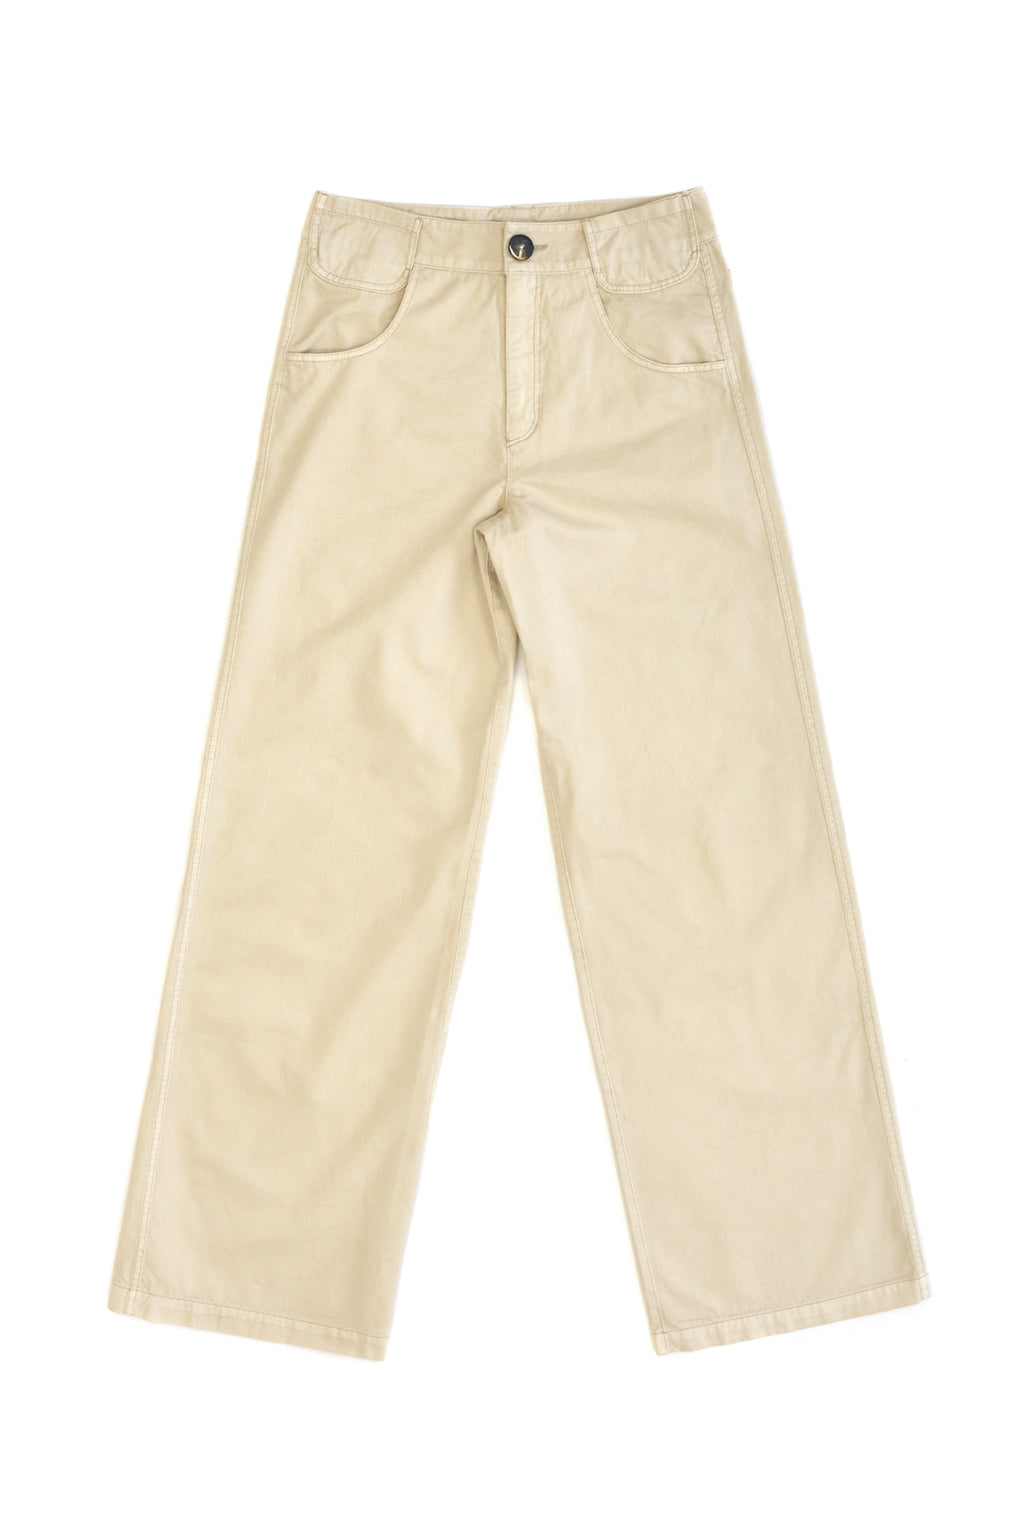 Telfar 6-Pocket Unisex Trouser, Bone